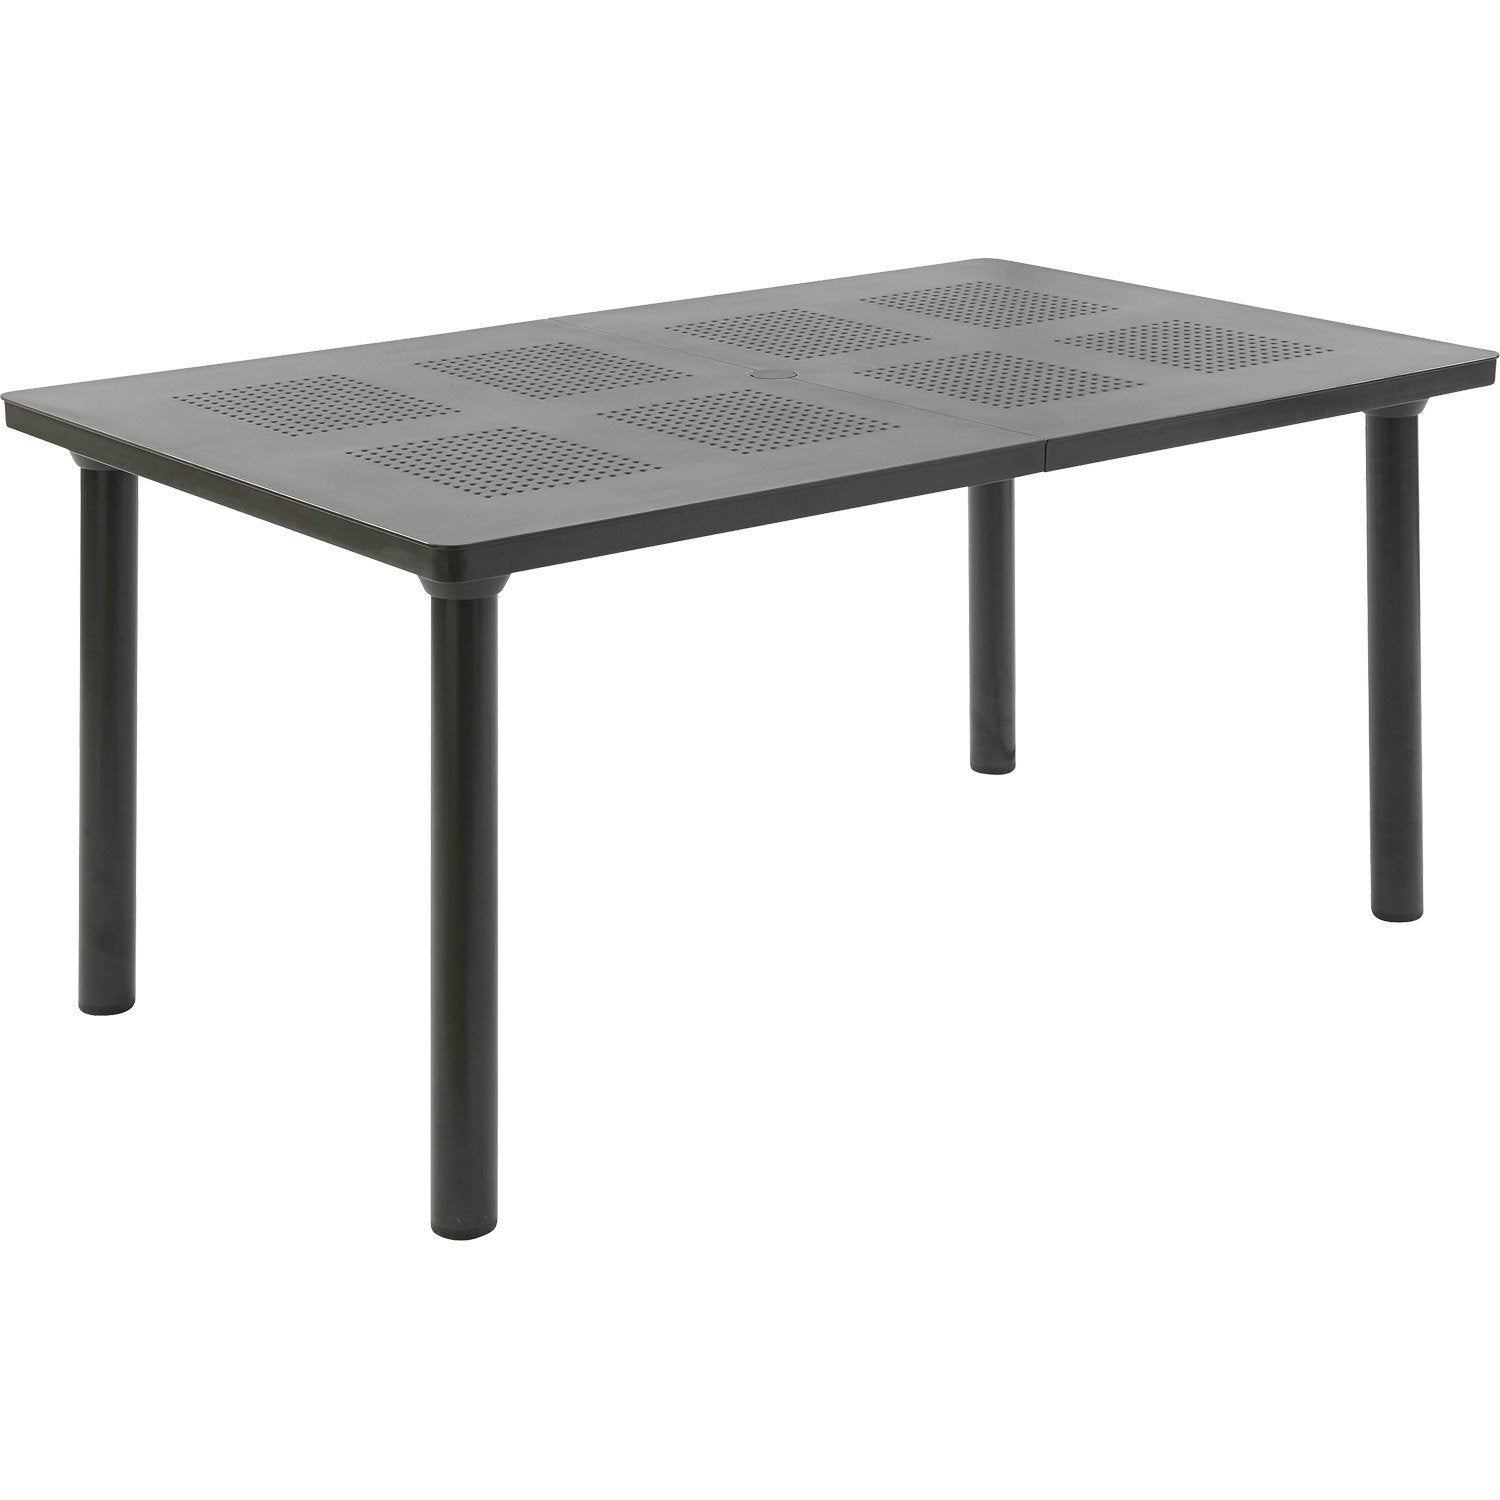 Table jardin ronde pas cher for Table ronde pas cher